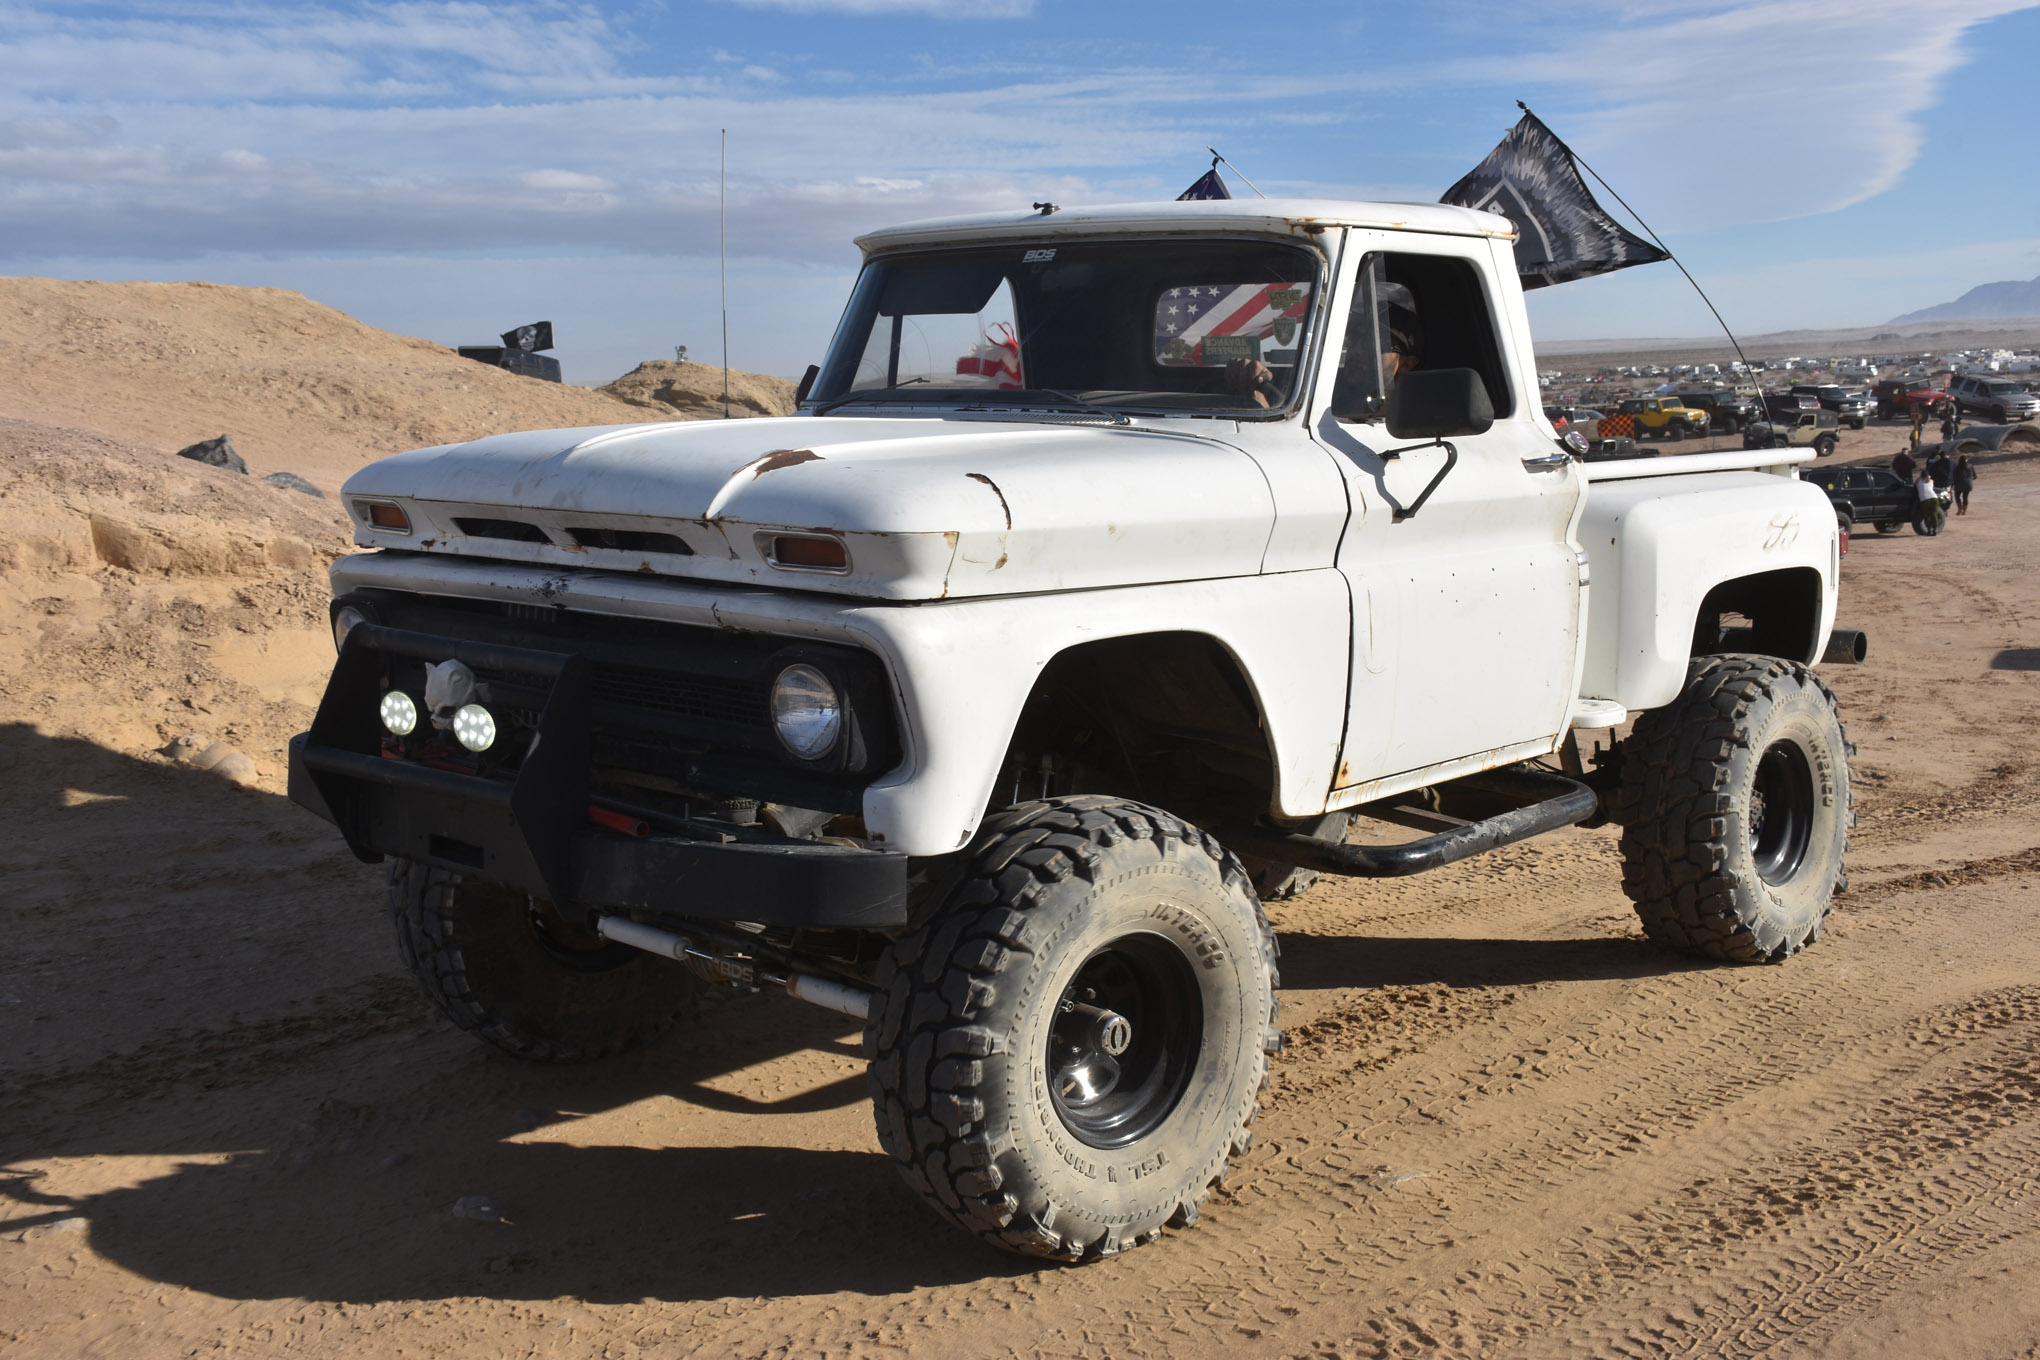 Vintage iron in use is always fun to see. How about this rowdy-looking 1960s Chevy C-10 truck? Where's a mud hole when you need one?